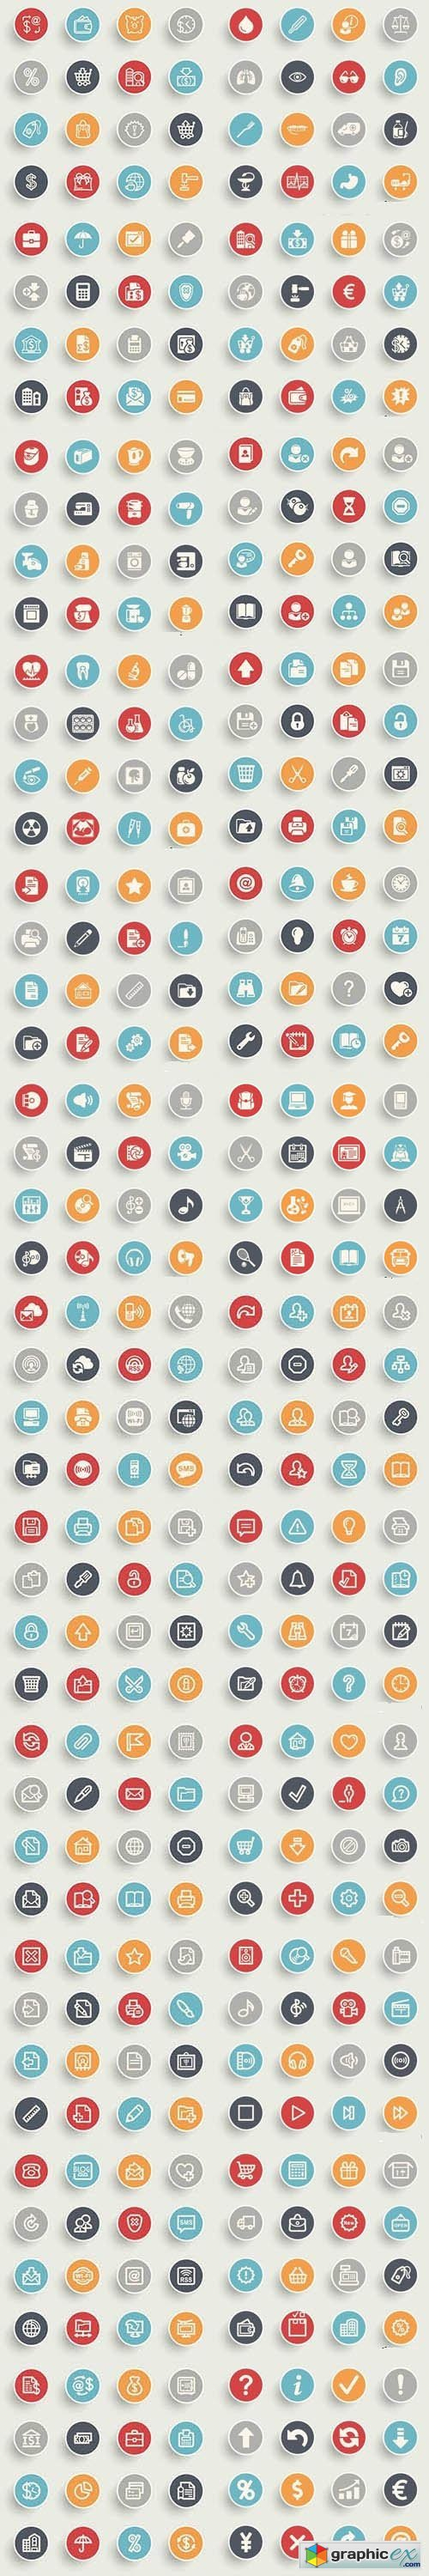 Symbols & Icons on Color Buttons